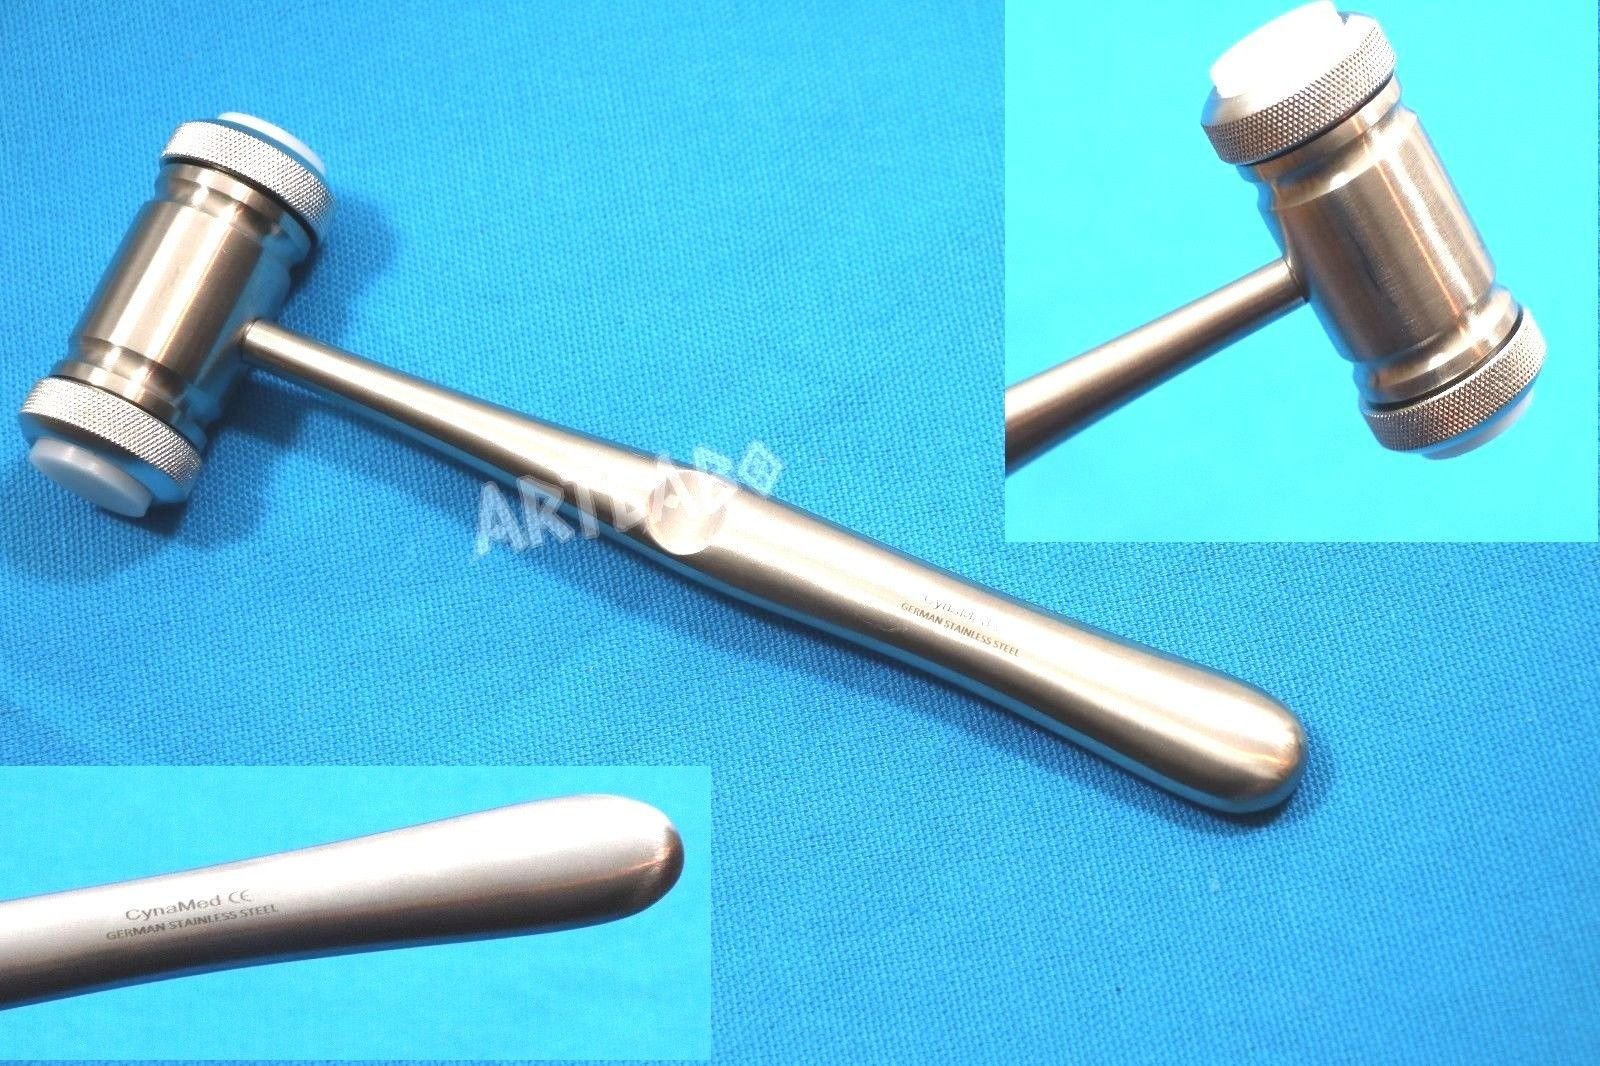 GERMAN 1 EACH Mead Mallet Bone Implant Sinus Lift Hammer Osteotome Dental Surgical Orthodontics Instrument ( CYNAMED )